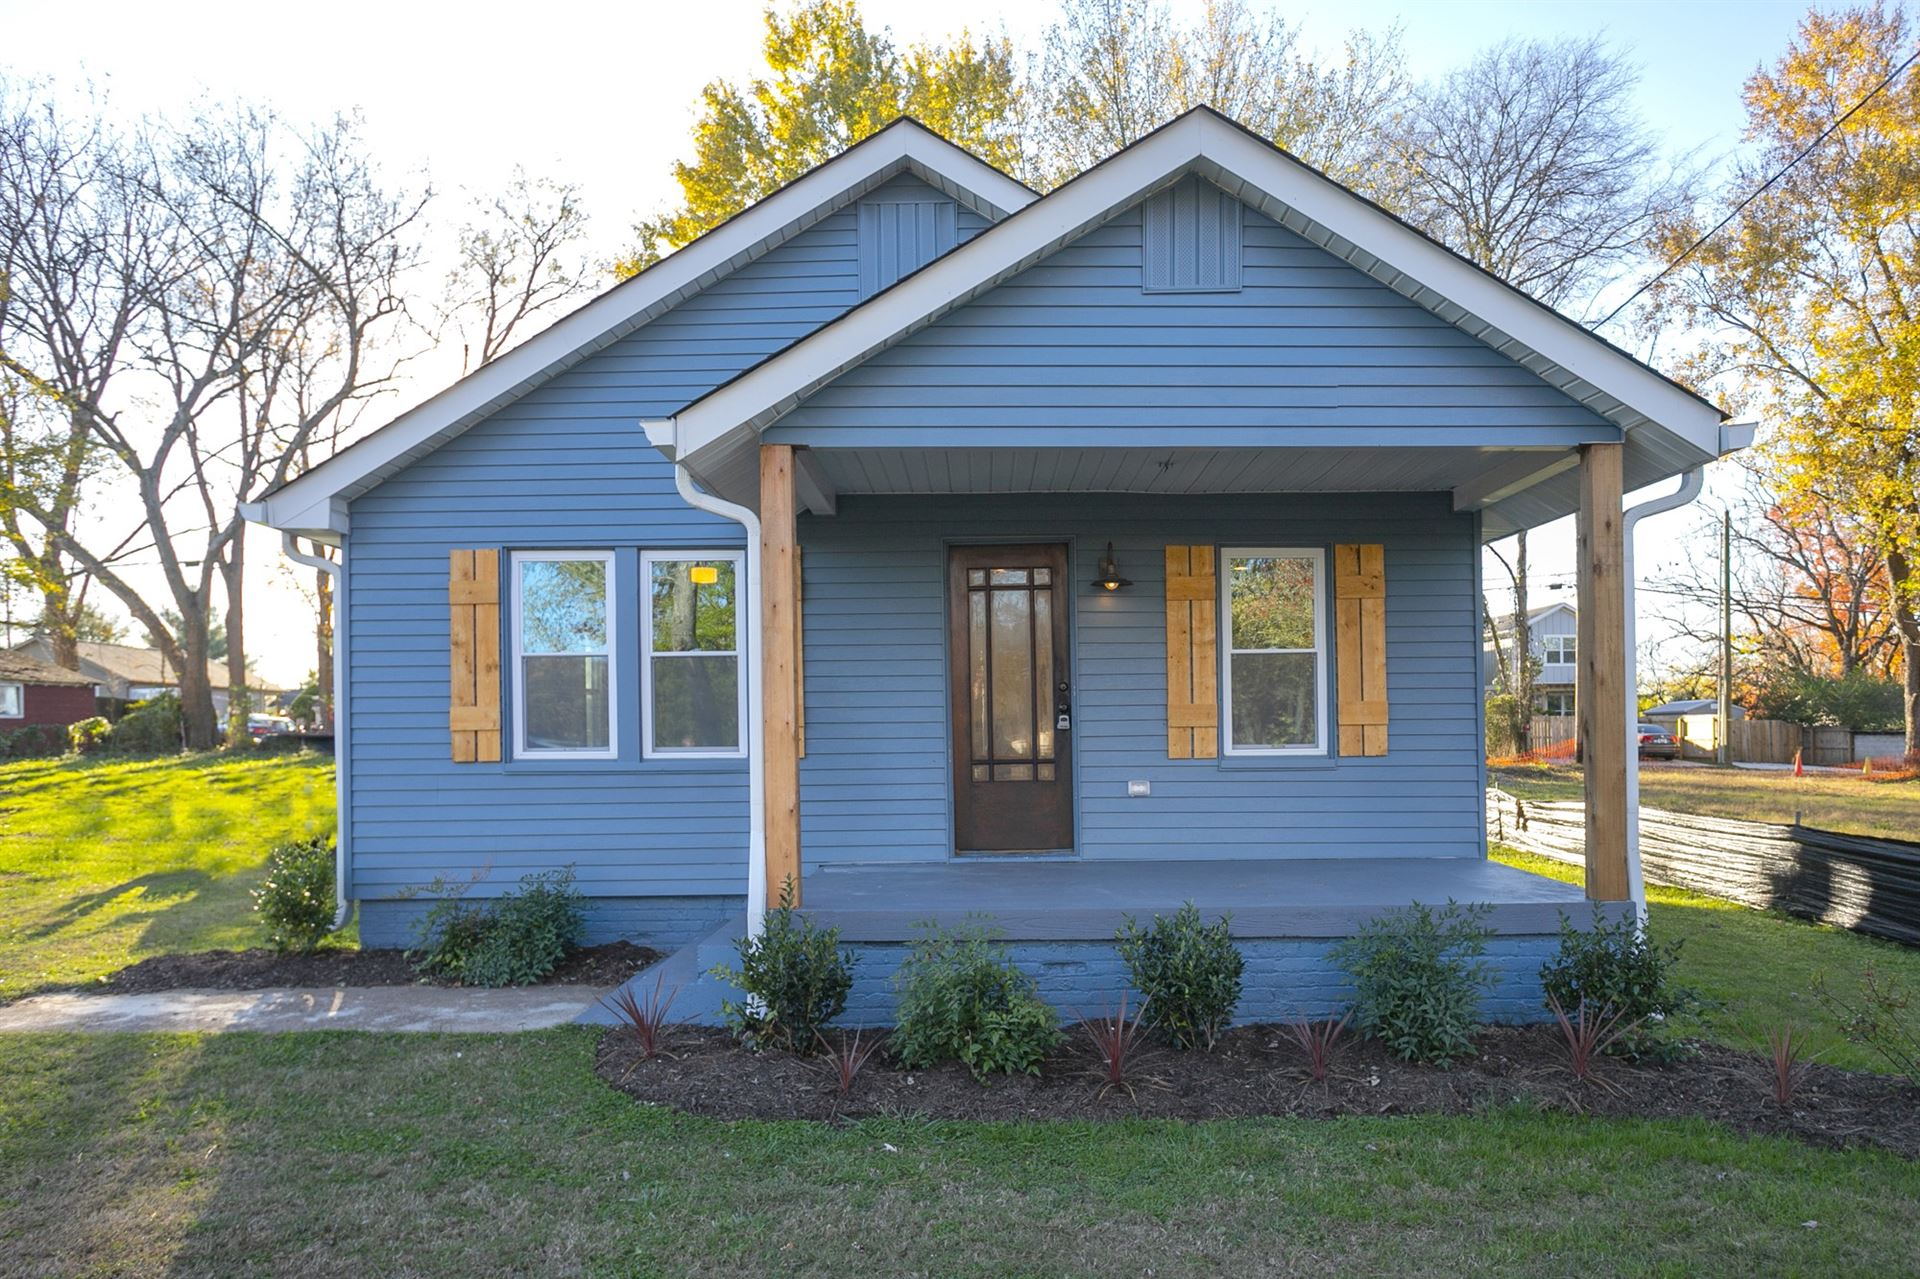 4243 Woods St, Old Hickory, TN 37138 - MLS#: 2206832